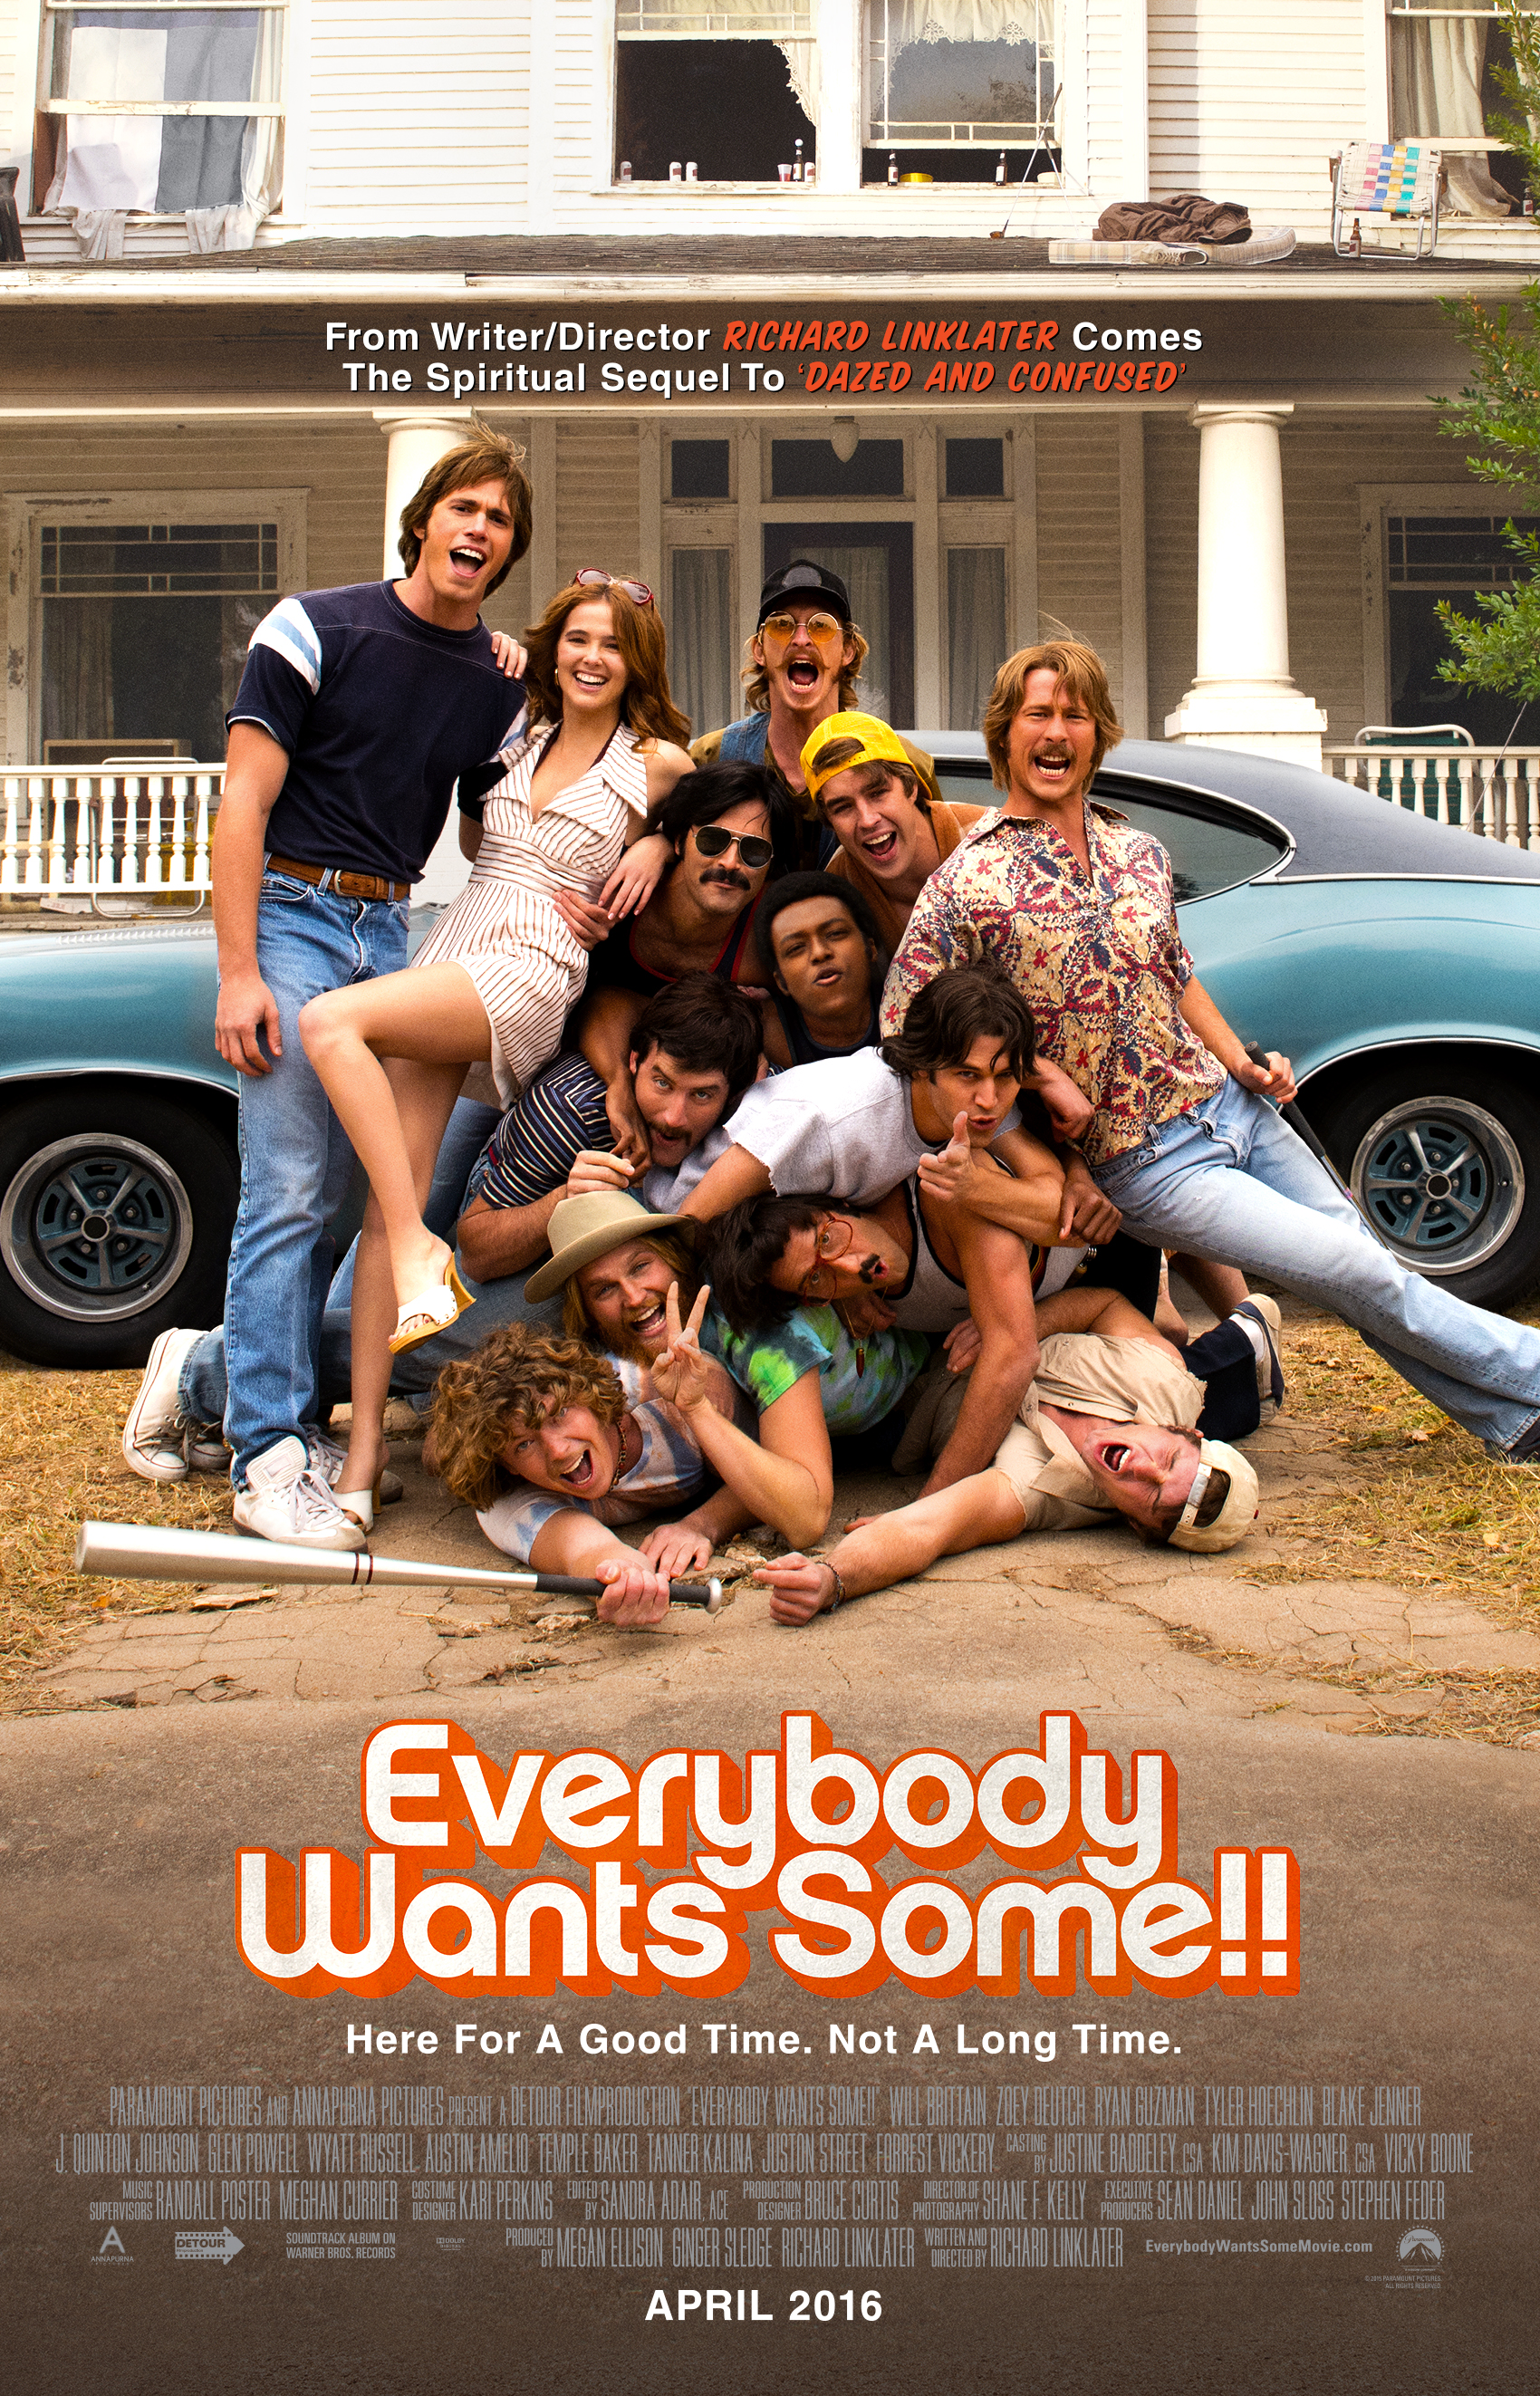 lanier movie reviews richard linkater writer and director of everybody wants some understands this the film follows college freshman